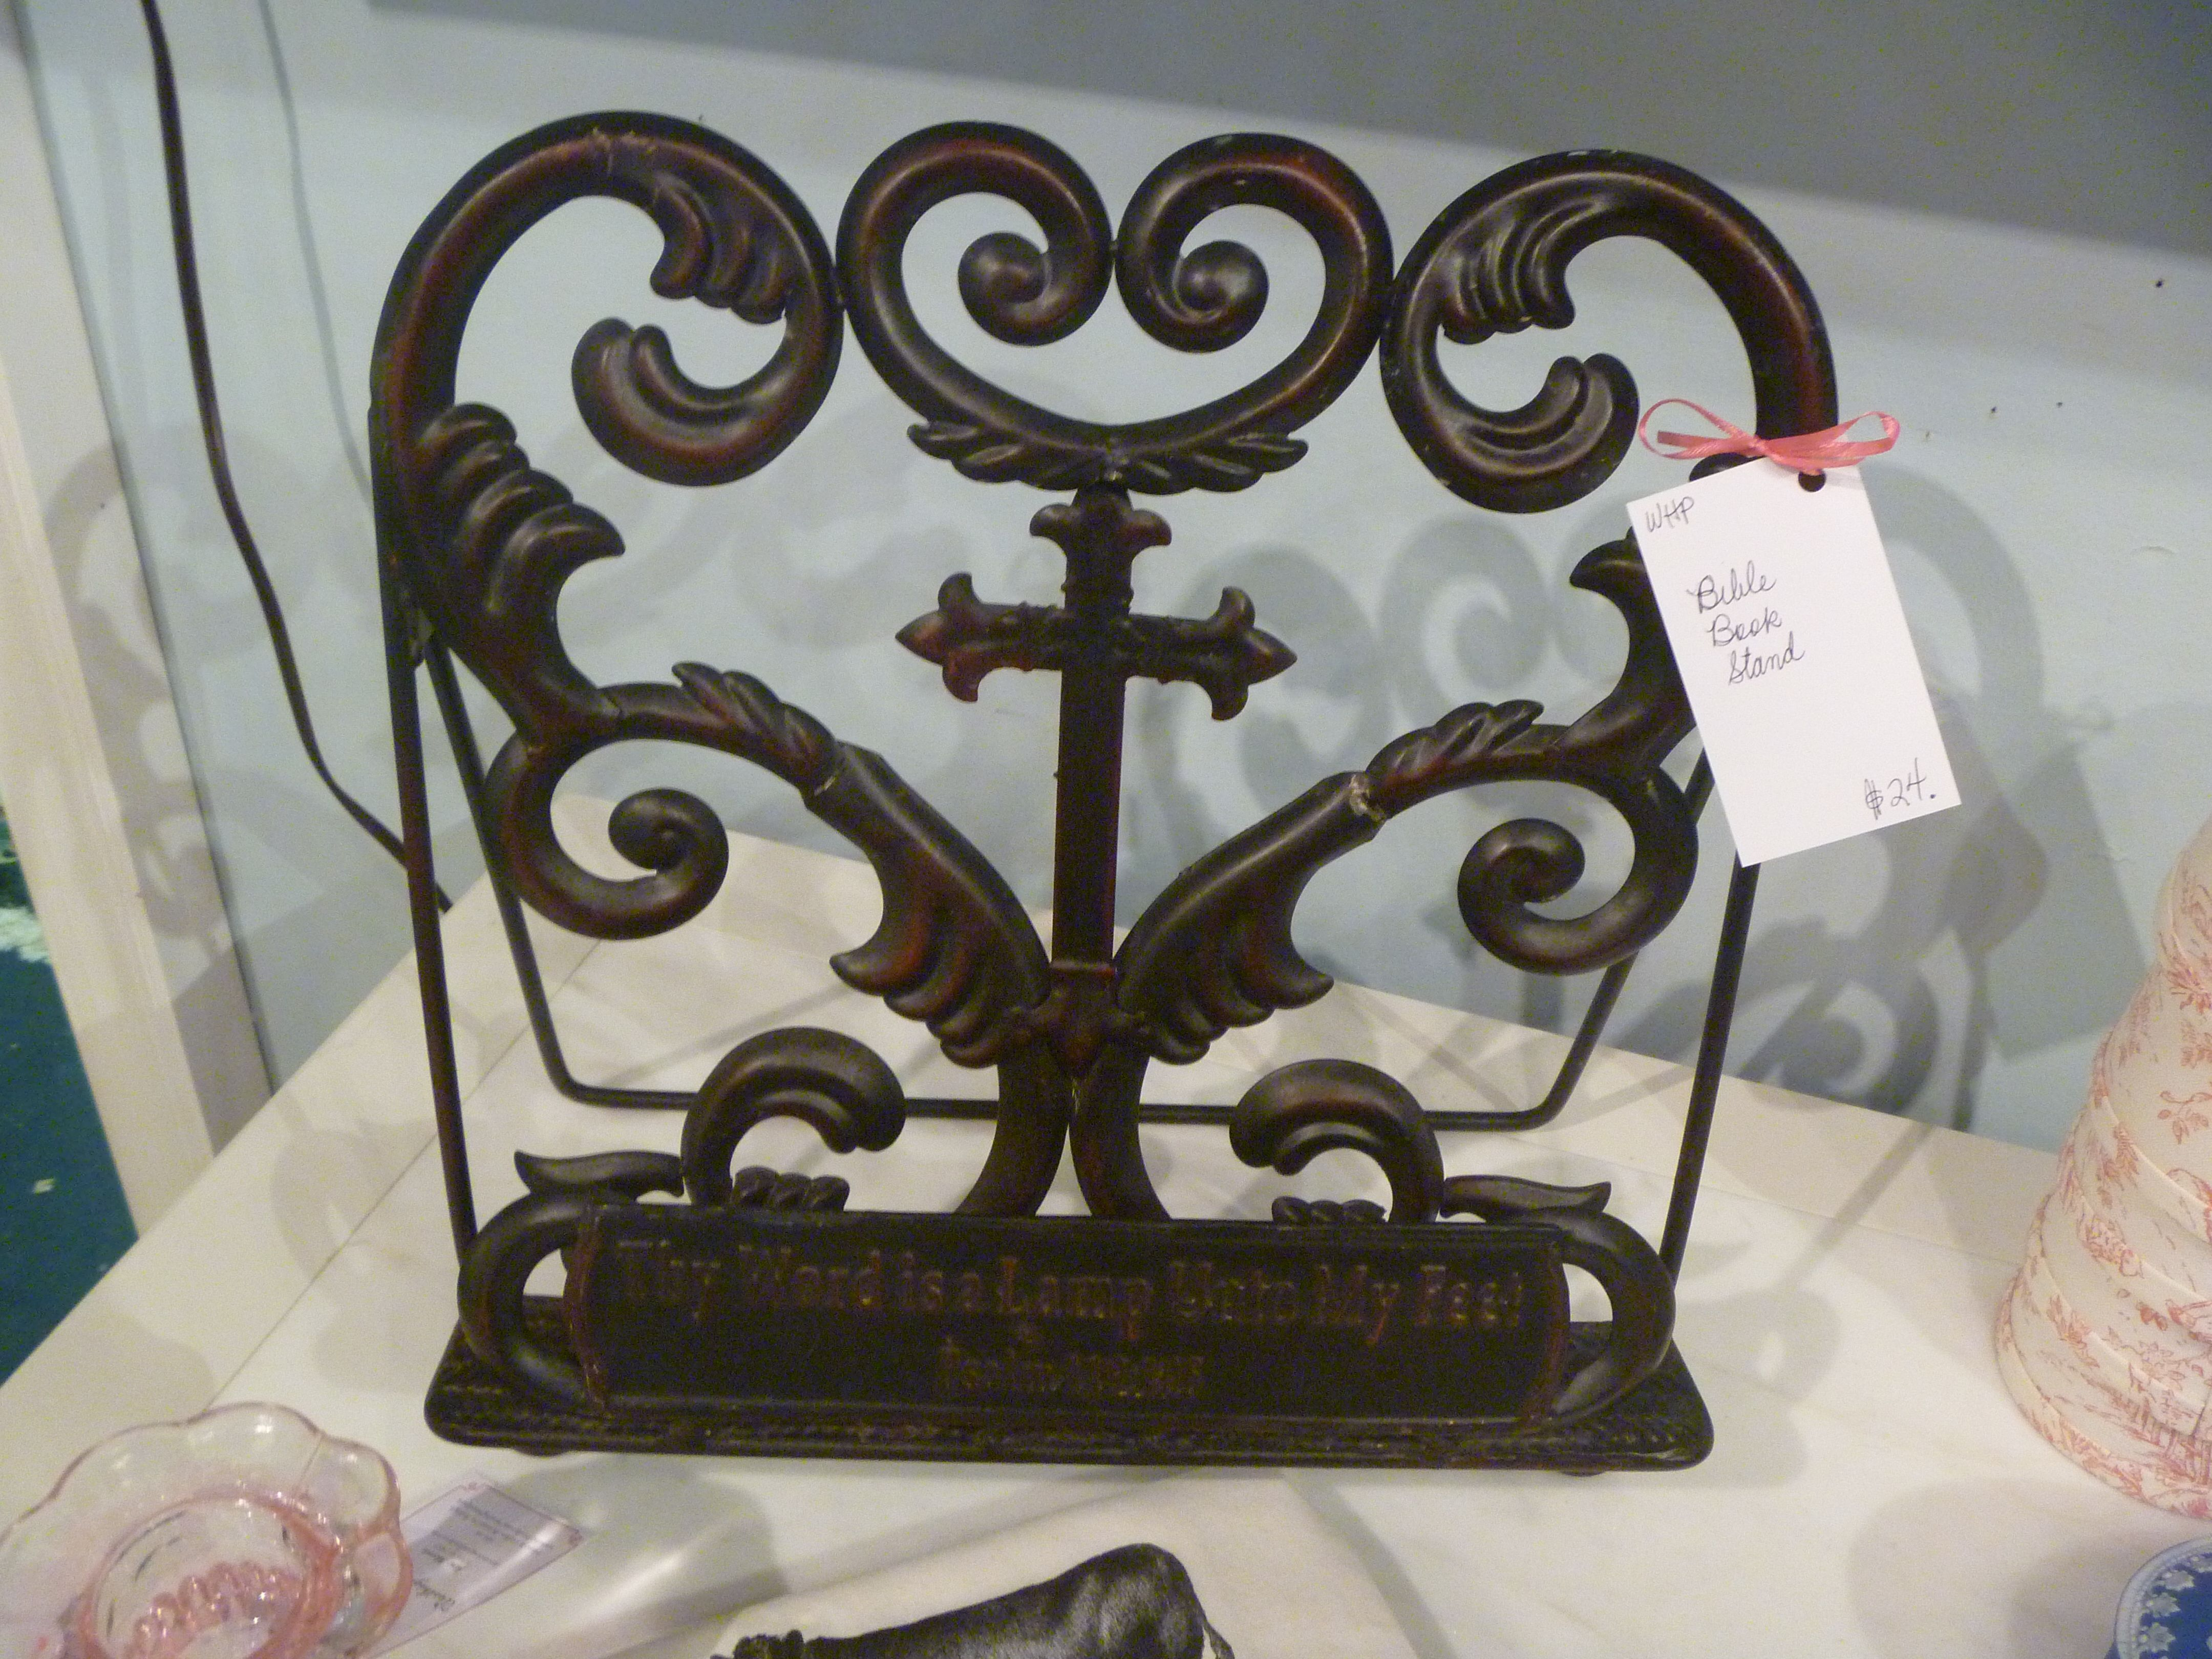 sold bible book stand whp hunt gather 24 nice t